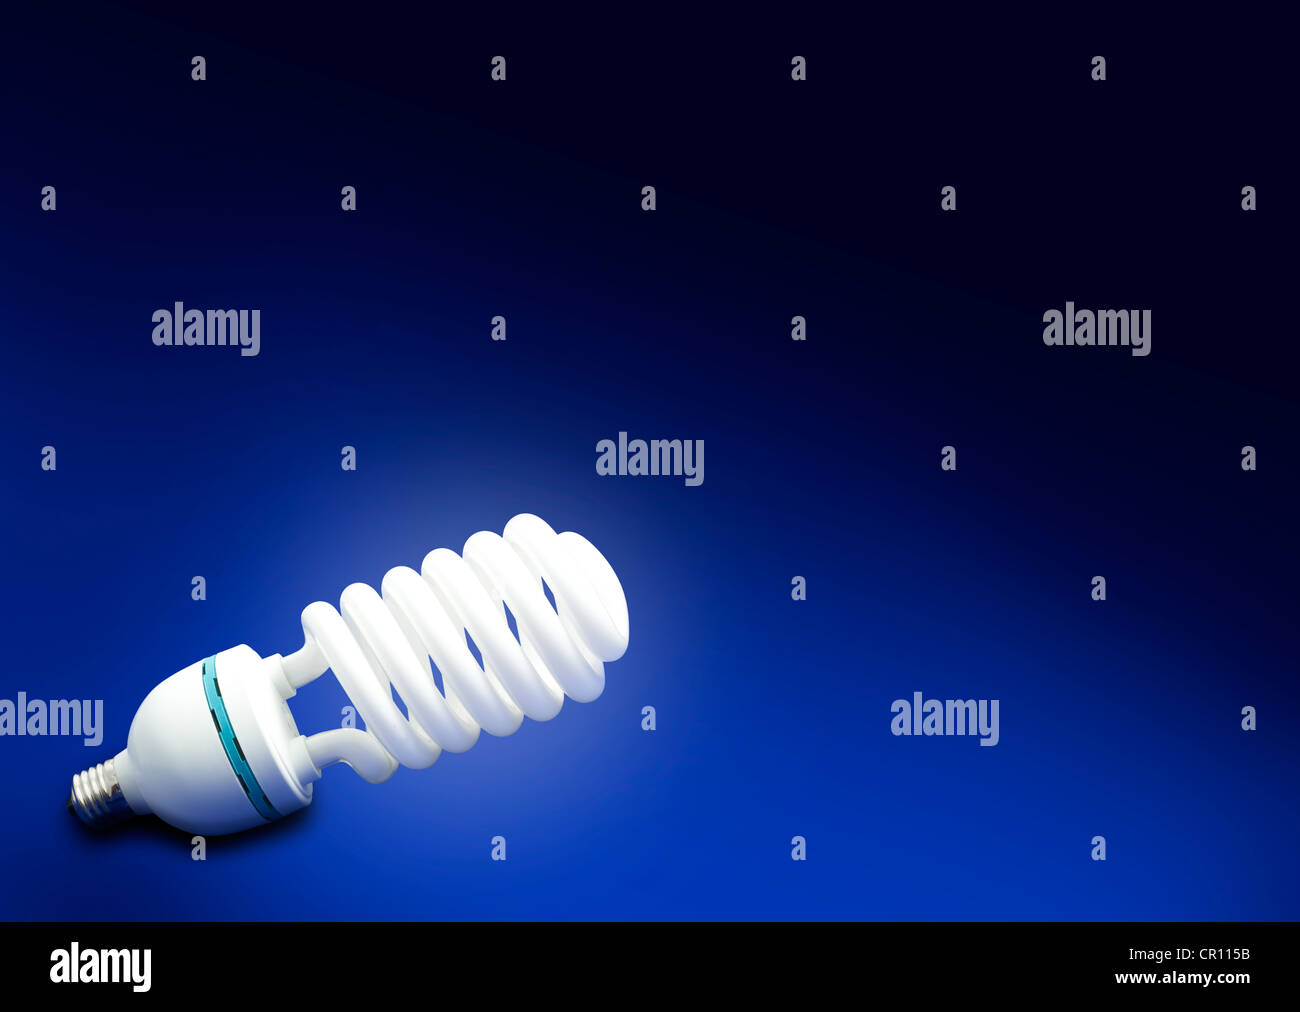 Save money and energy abstract background blue concept fluorescent bulb - Stock Image